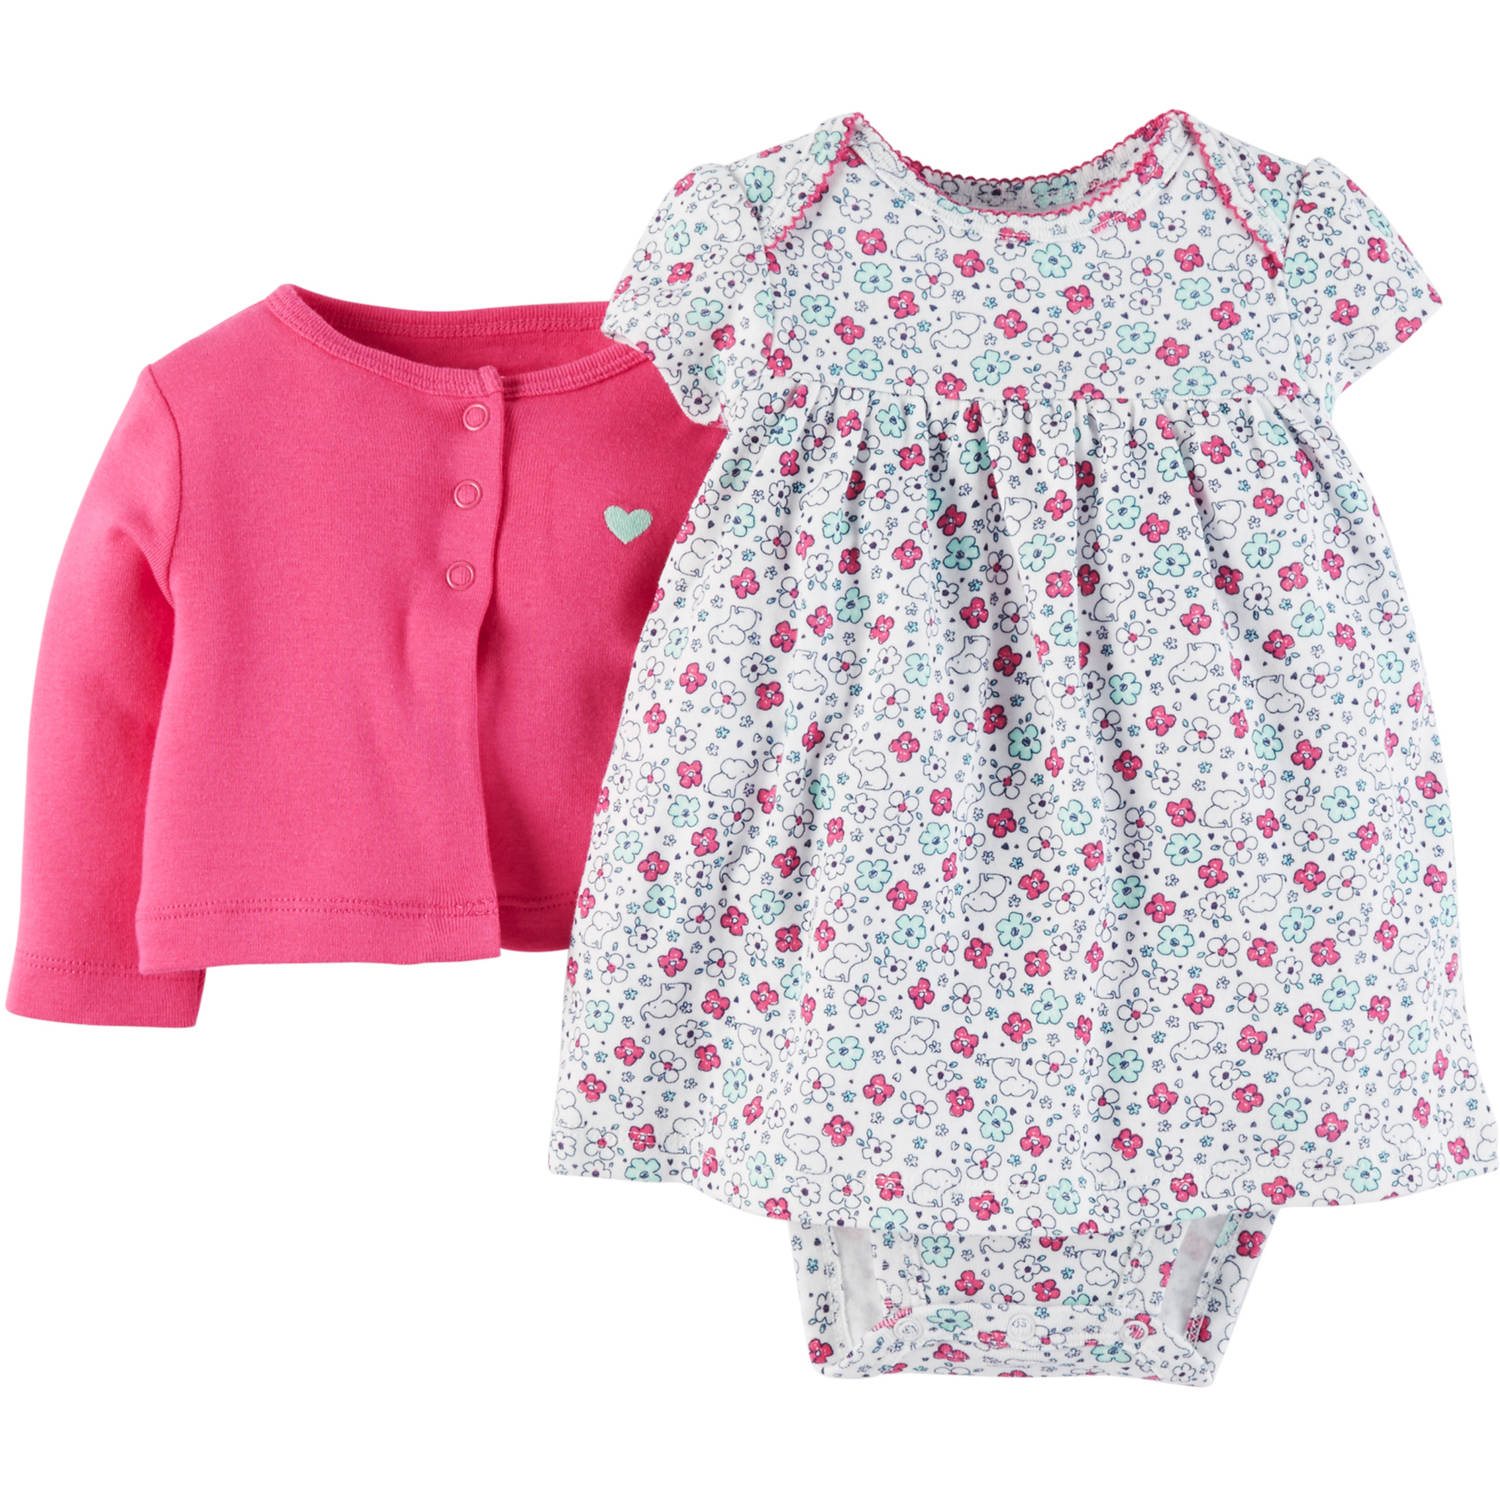 Child Of Mine Made By Carter's Newborn Baby Girl Dress And Cardigan 2-Piece Set